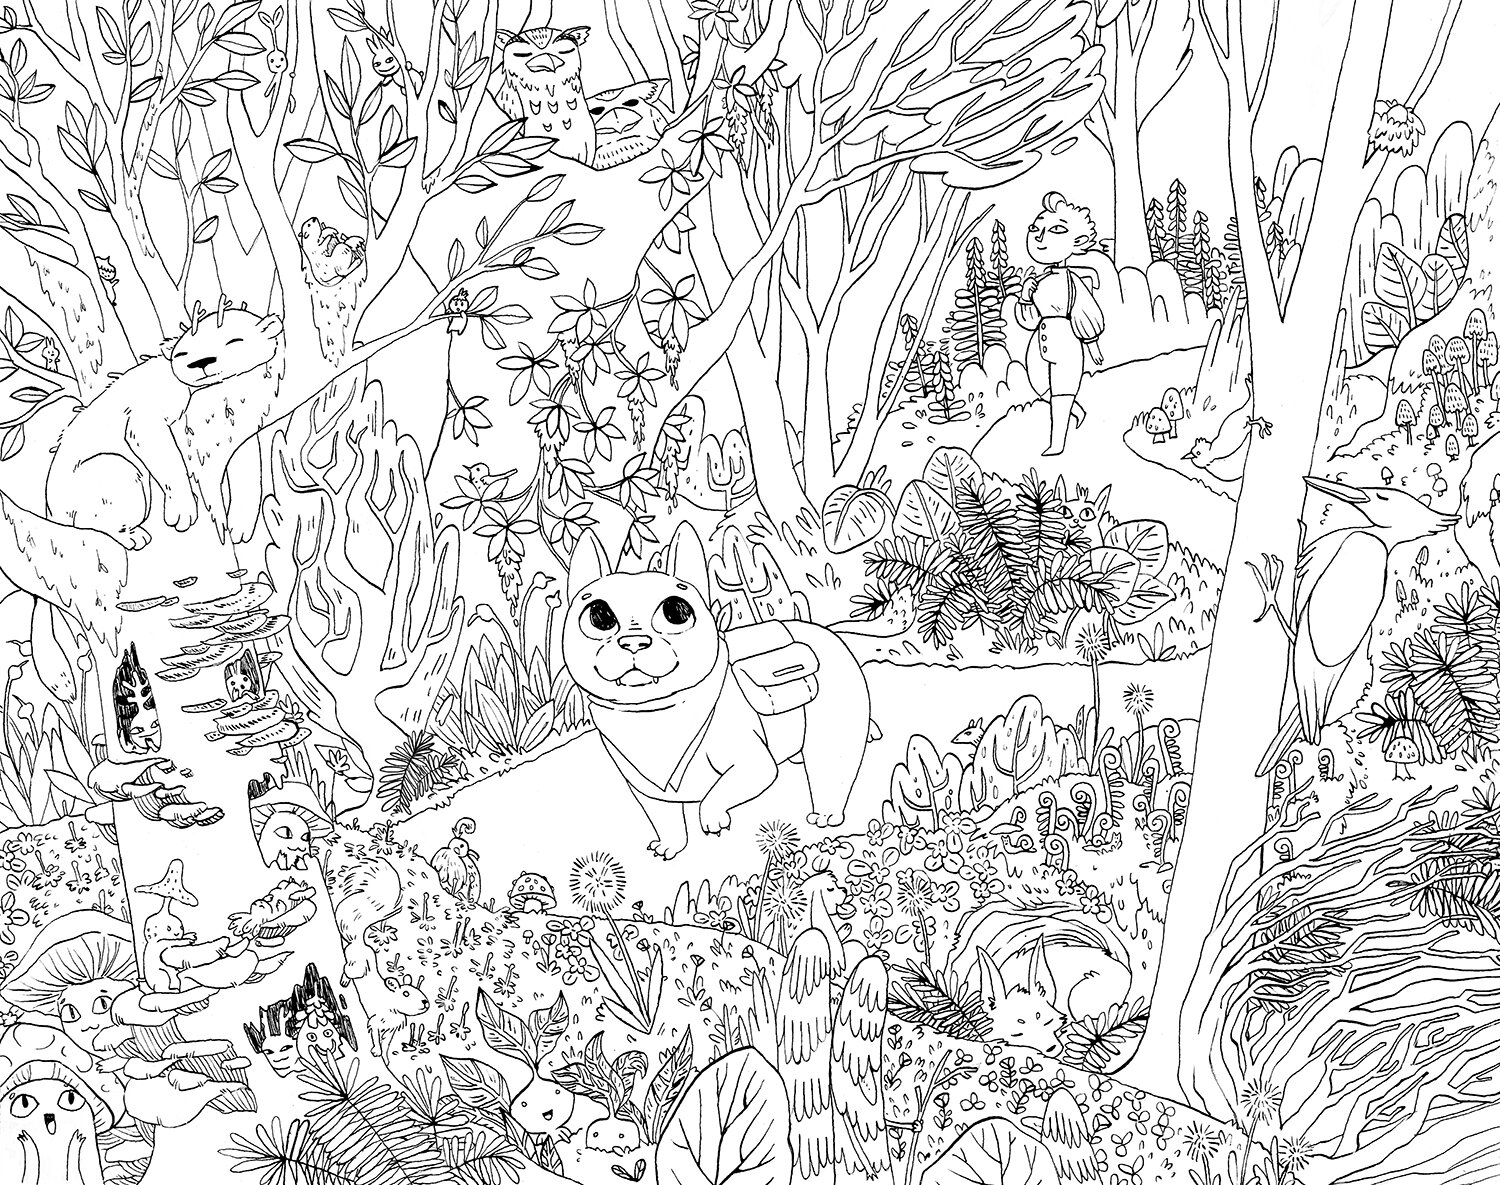 forest inked.jpg